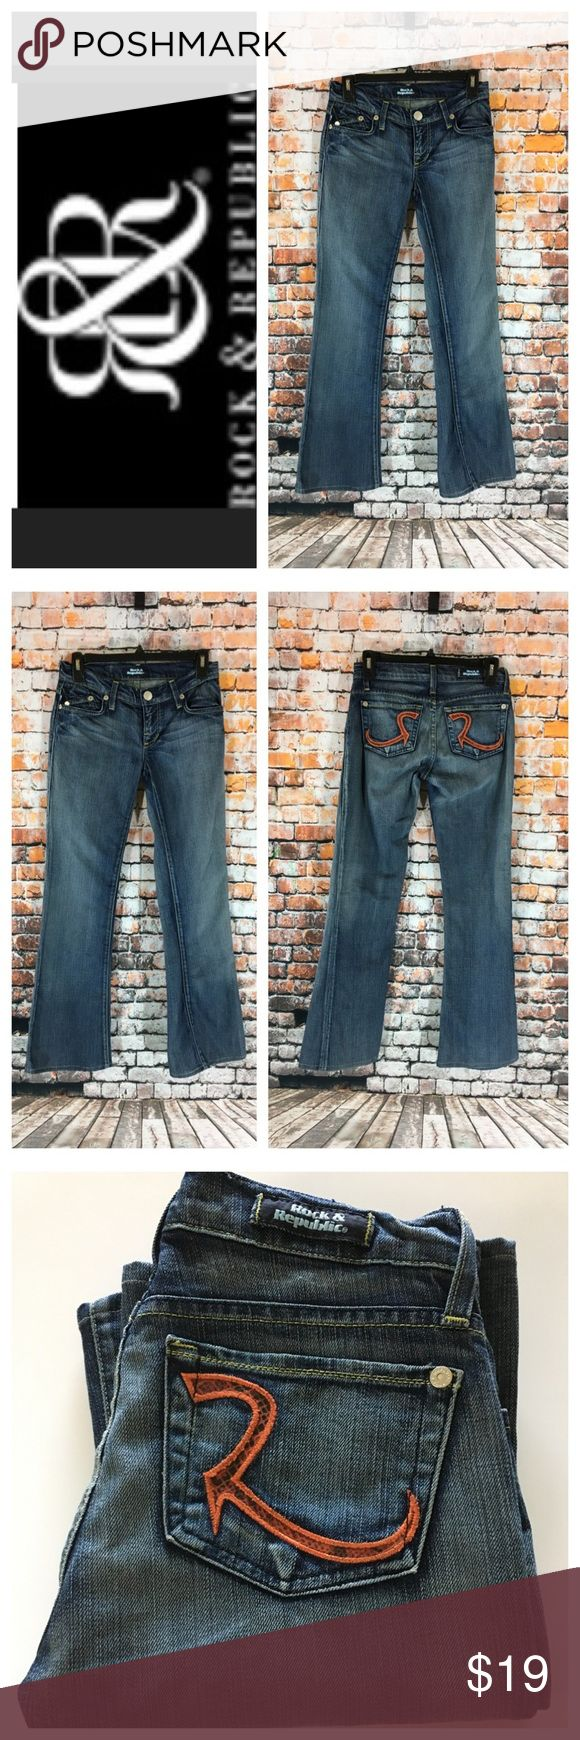 "💸Rock & Republic flare leg denim Jean size 25 💸Rock & Republic flare leg denim Jean size 25 inseam 30"" (hemmed) and rise 7"". Leg width opening is 9"" across. Measurements are approximate. You are looking a used pair of Rock & Republic jeans in a flare leg with orange designer emblem on rear pockets. Rock & Republic Jeans Flare & Wide Leg"